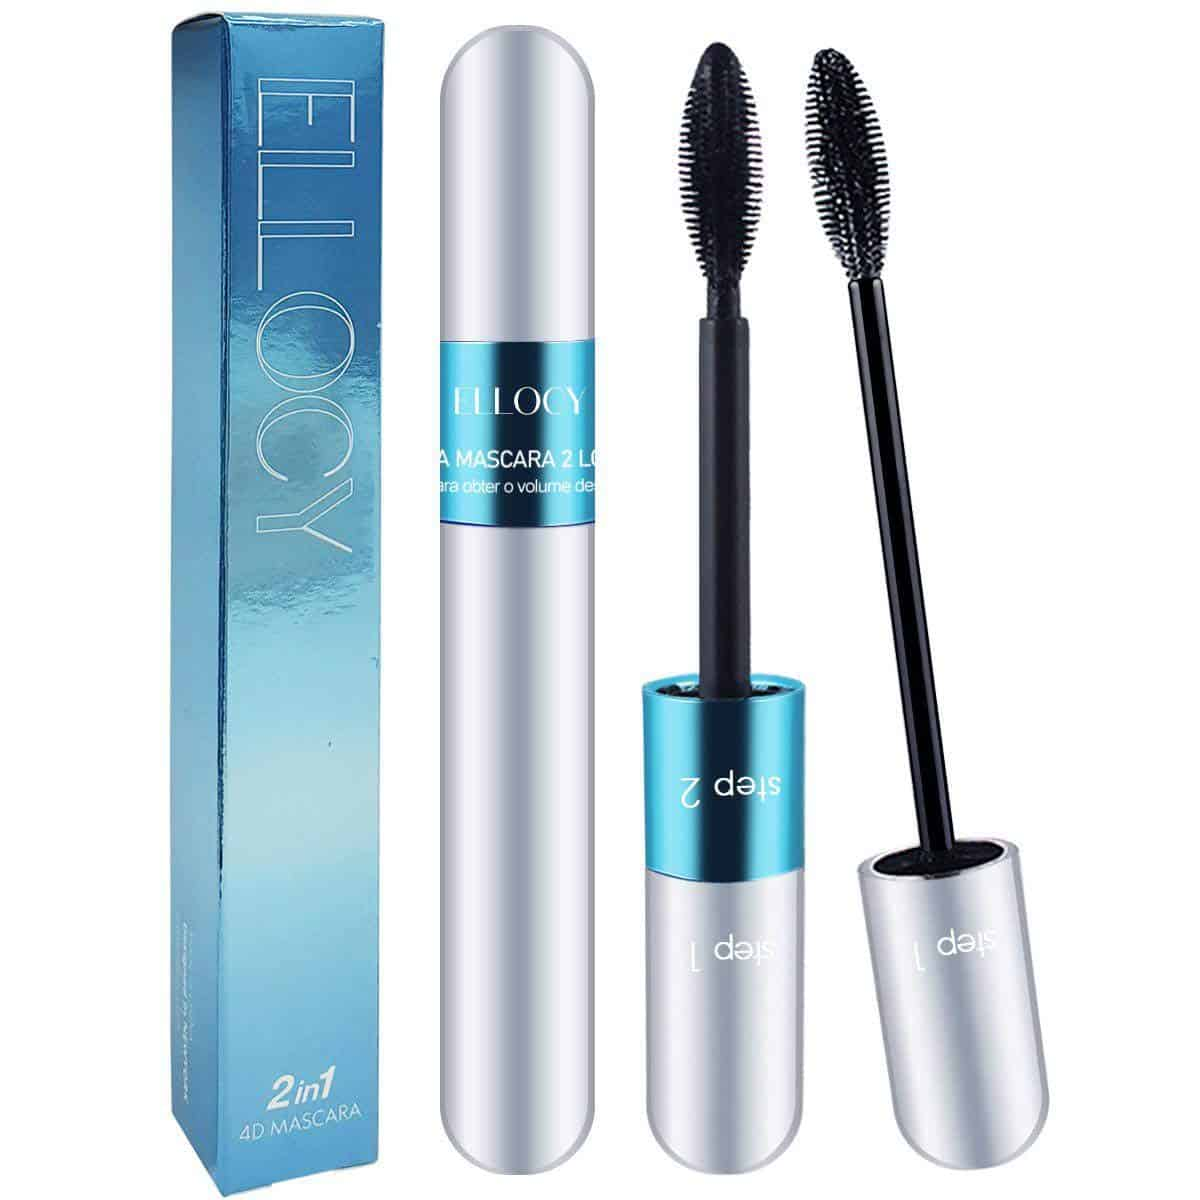 Ellocy 4D Silk Fiber Lash Mascara 2 in 1 Mascara for Natural and Voluminous Look Premium Thickening and Waterproof Mascara for Long Lasting Charming Eye Makeup